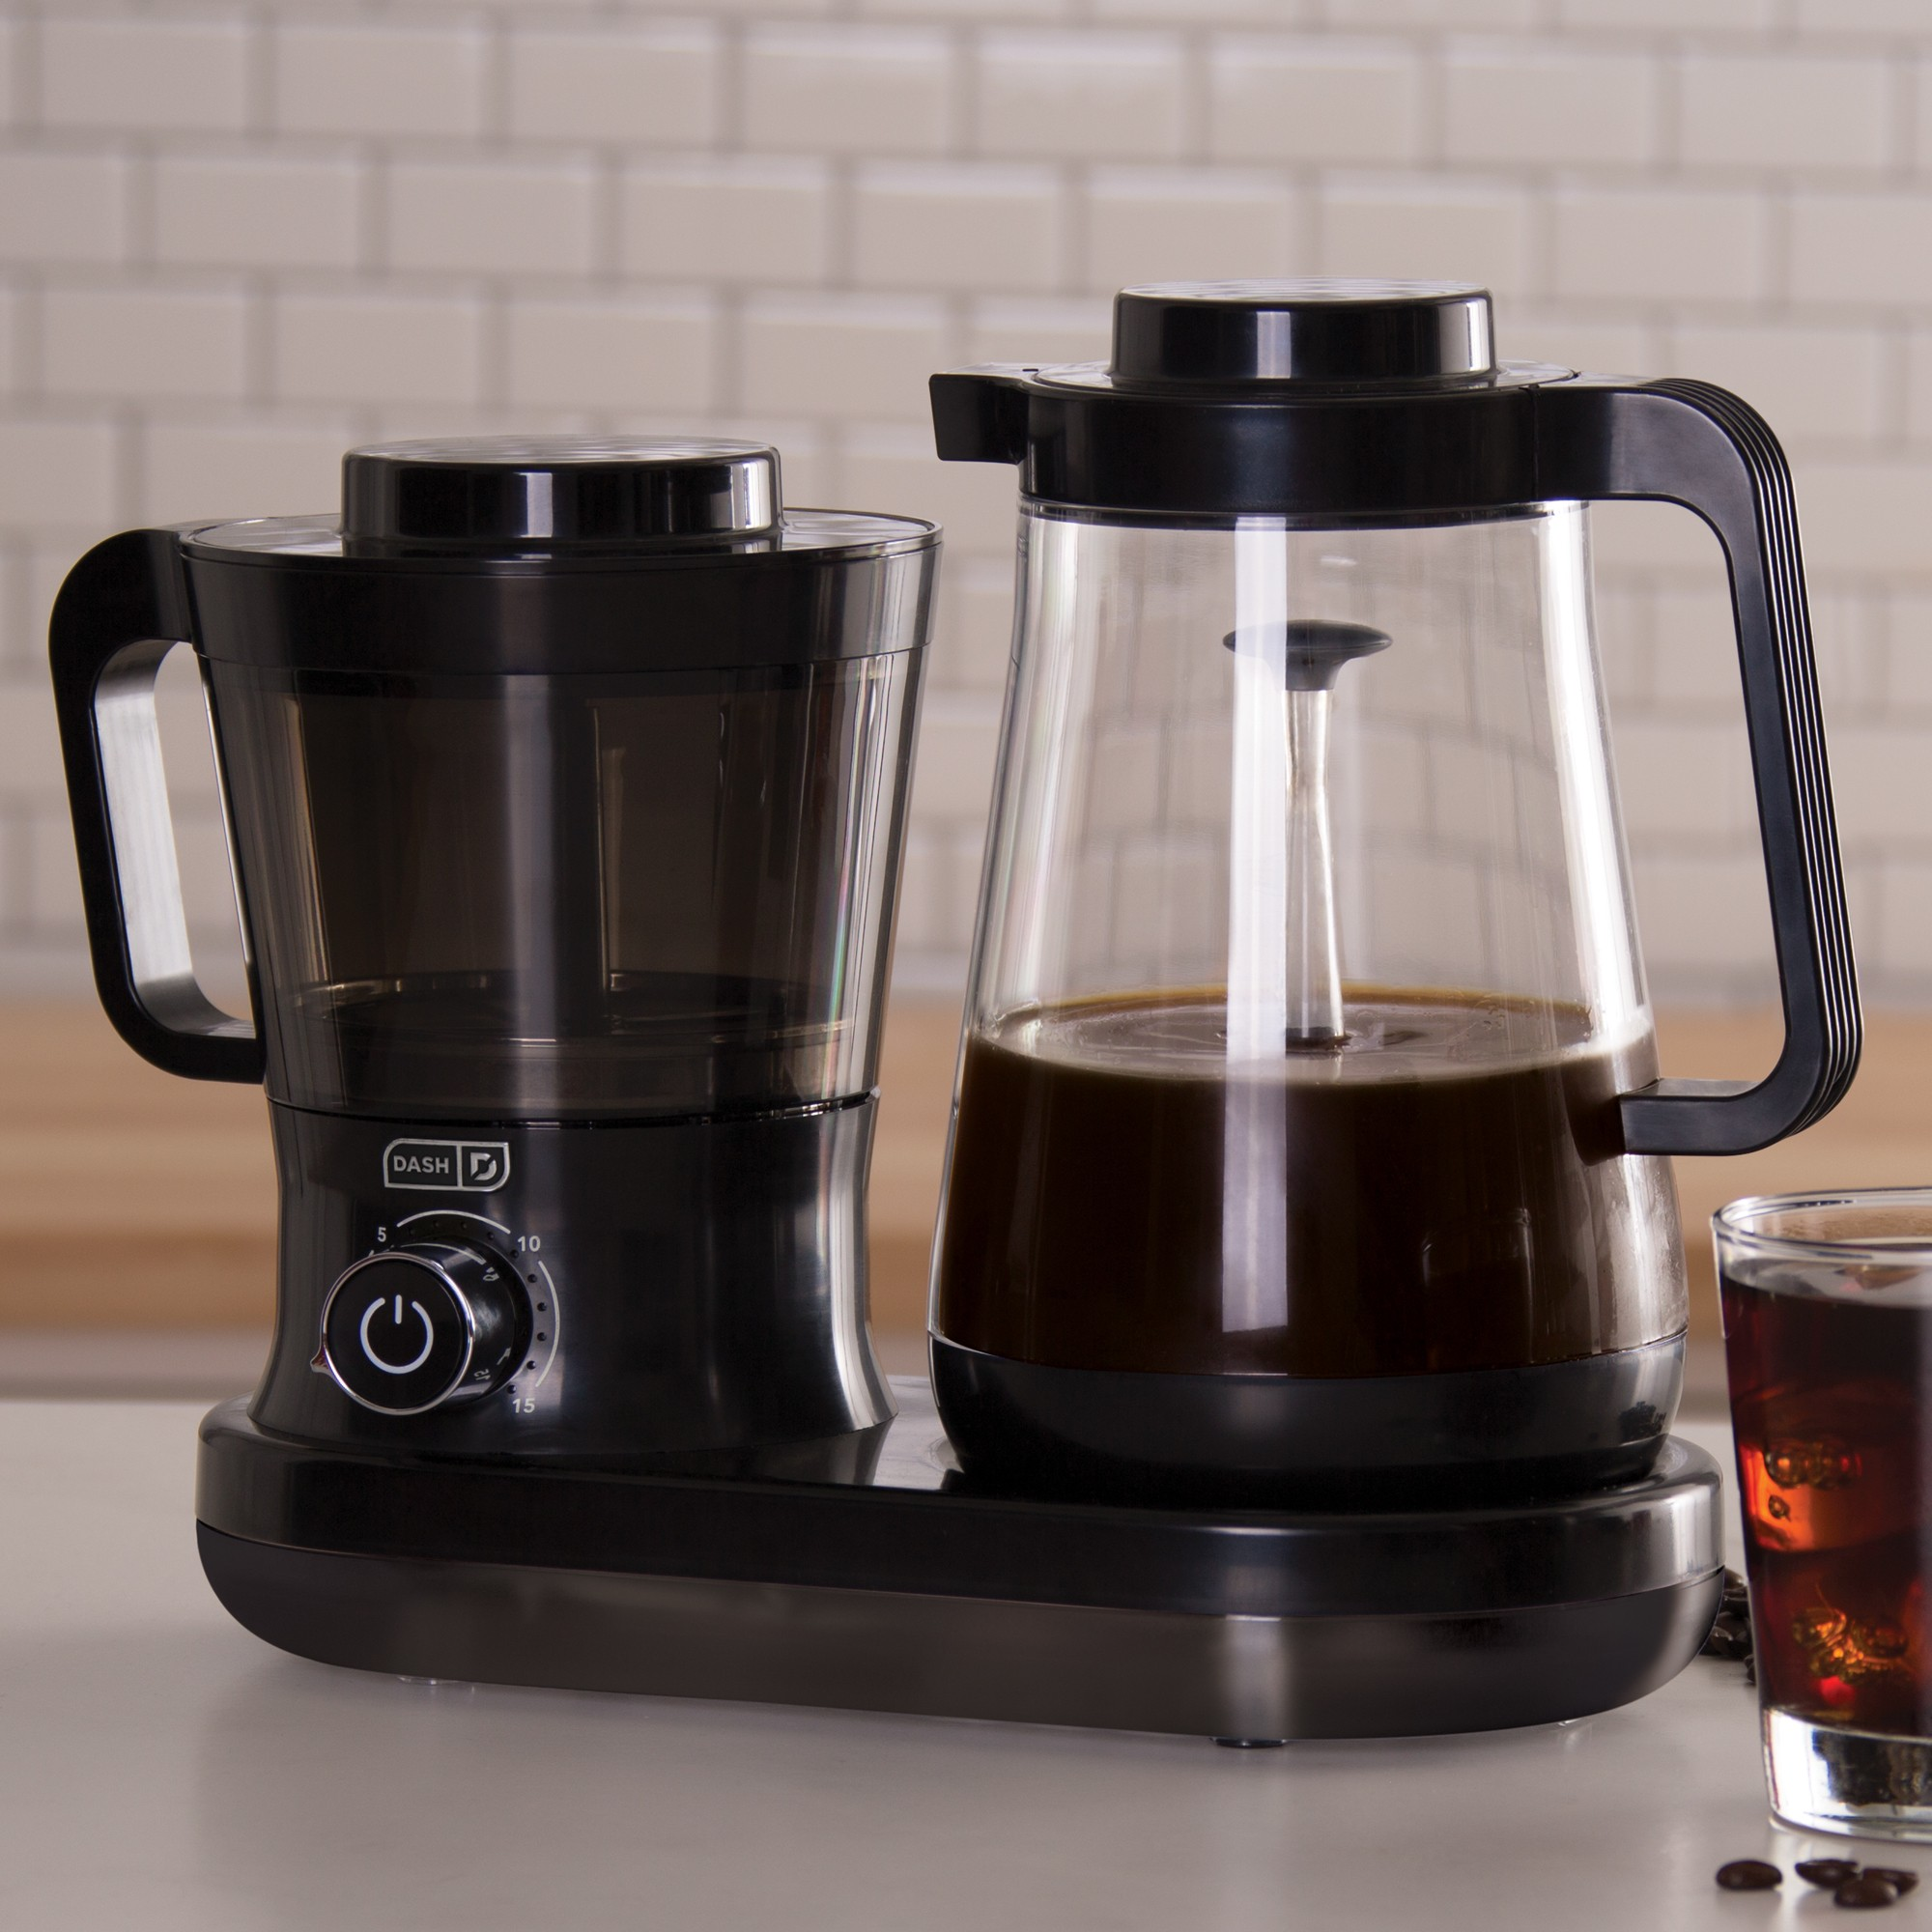 Dash Cold Brew Coffee Maker Black Cold brew coffee